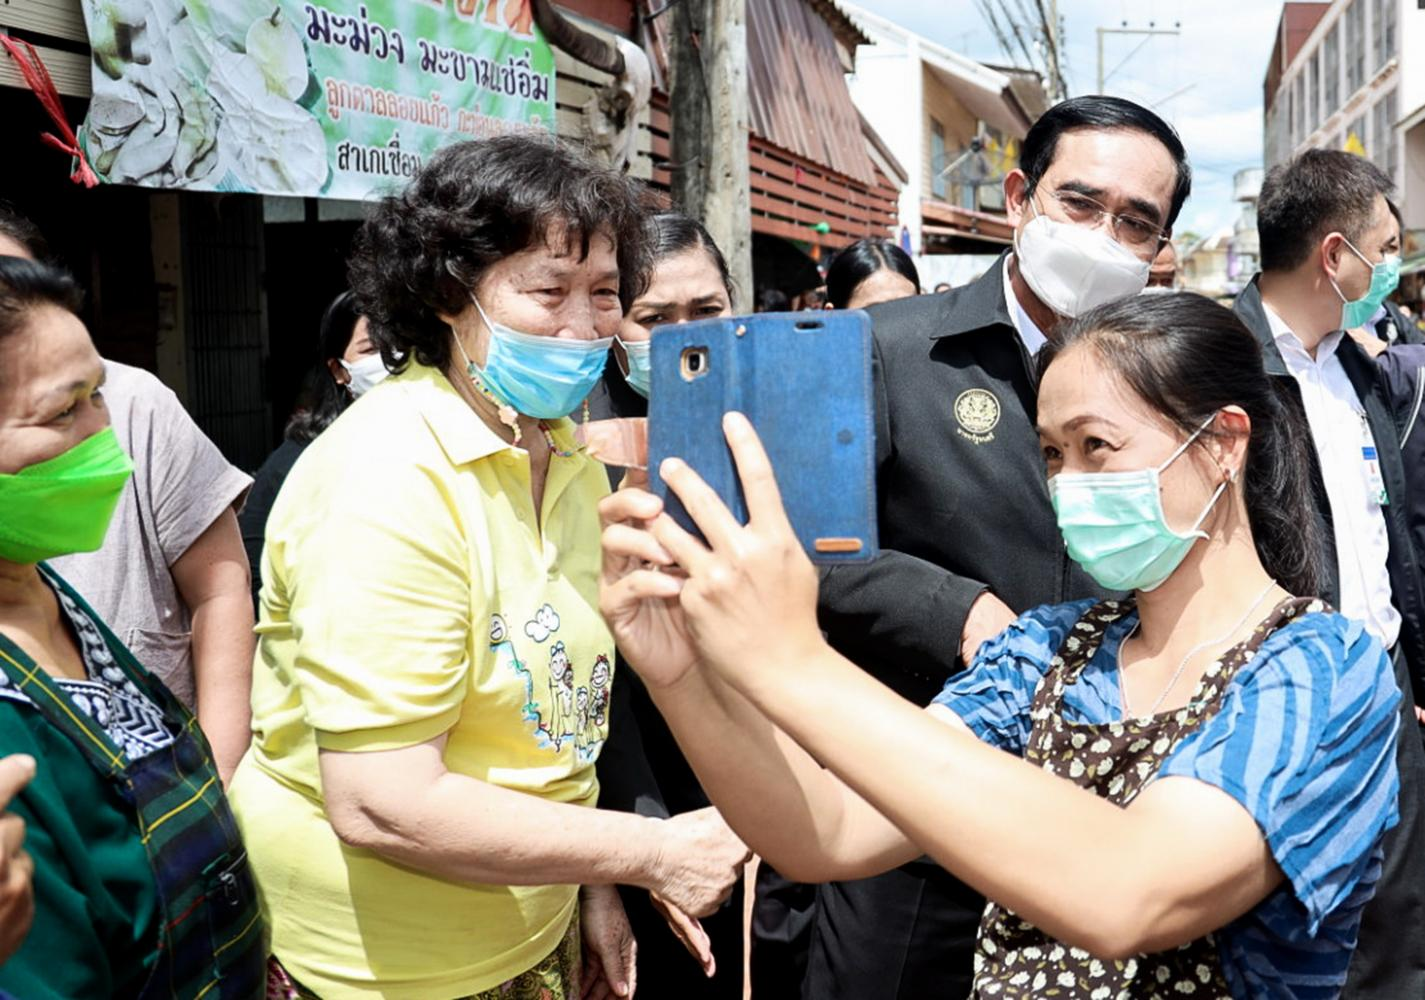 Gen Prayut Chan-o-cha started his campaign to visit people around the country late last month after the rift within the Palang Pracharath Party was mended. (Photo: Pariyaron Promsaka Na Sakolnakorn)